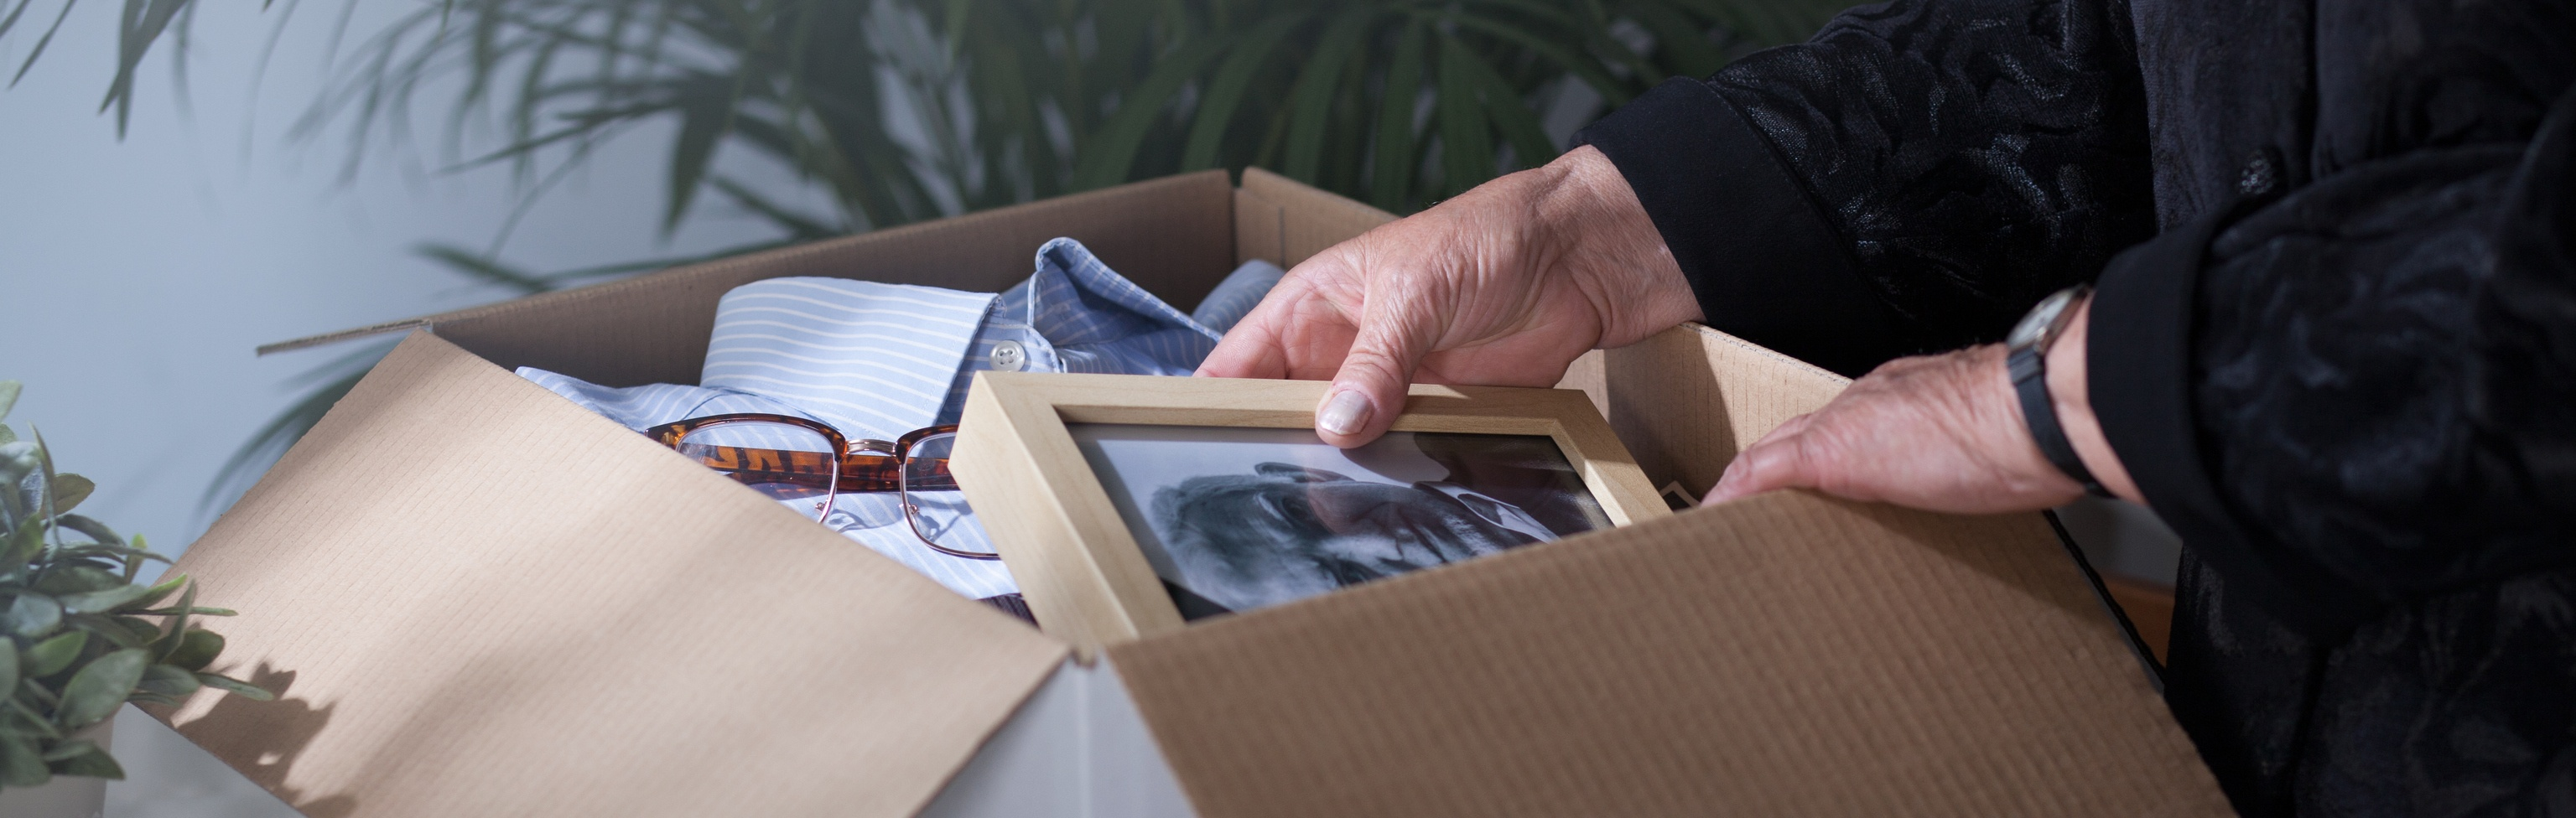 Today's Caregivers Are Unprepared for Estate Liquidation